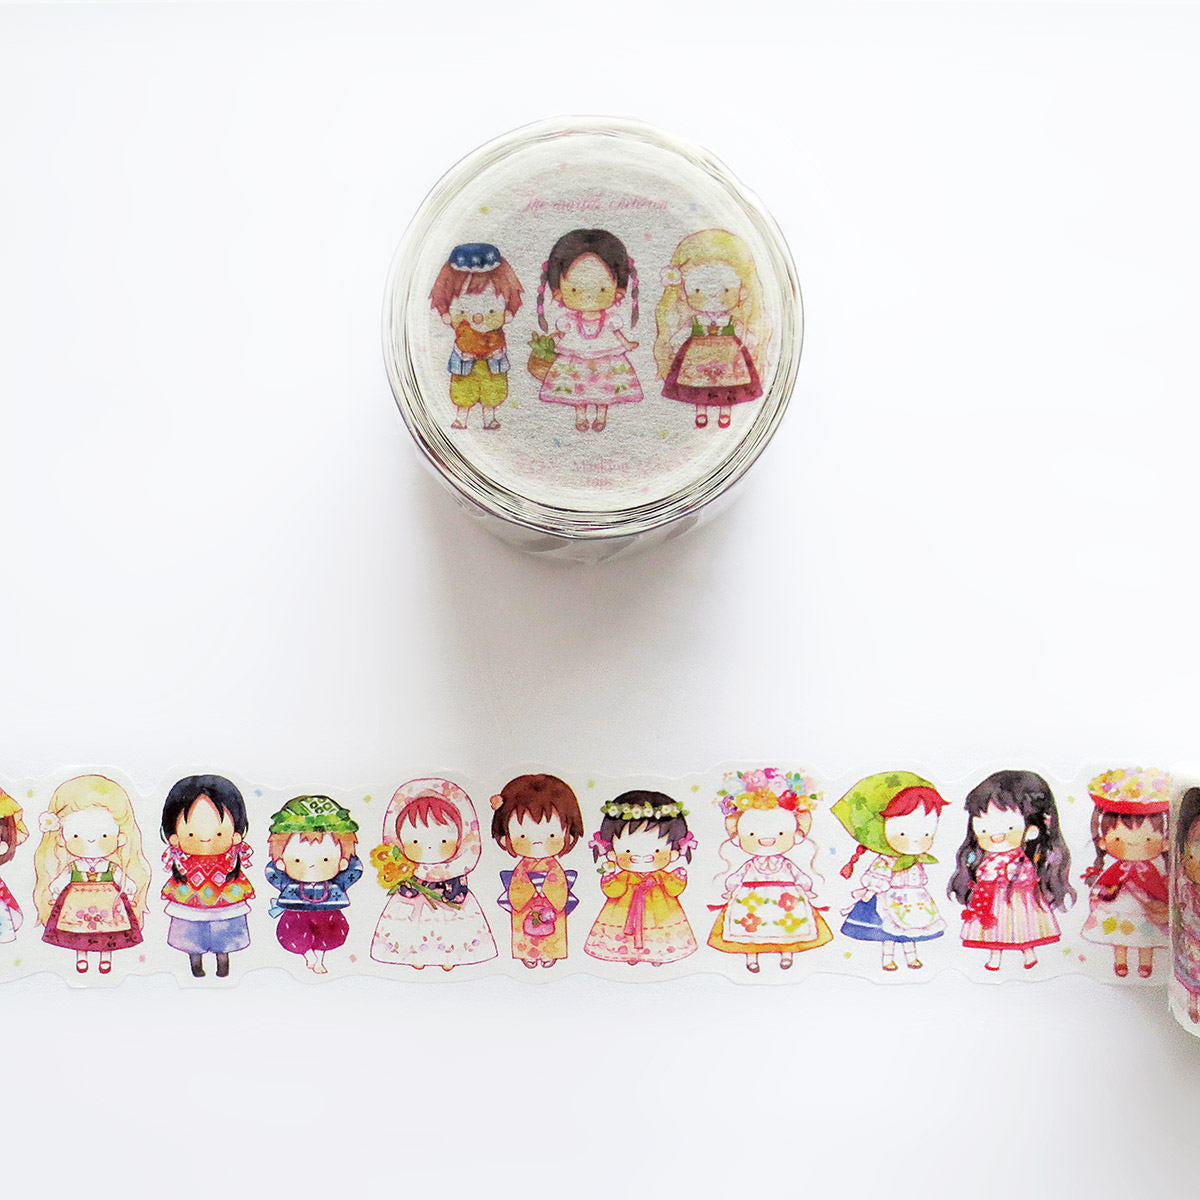 Hayama Washi Tape: The World's Children 2